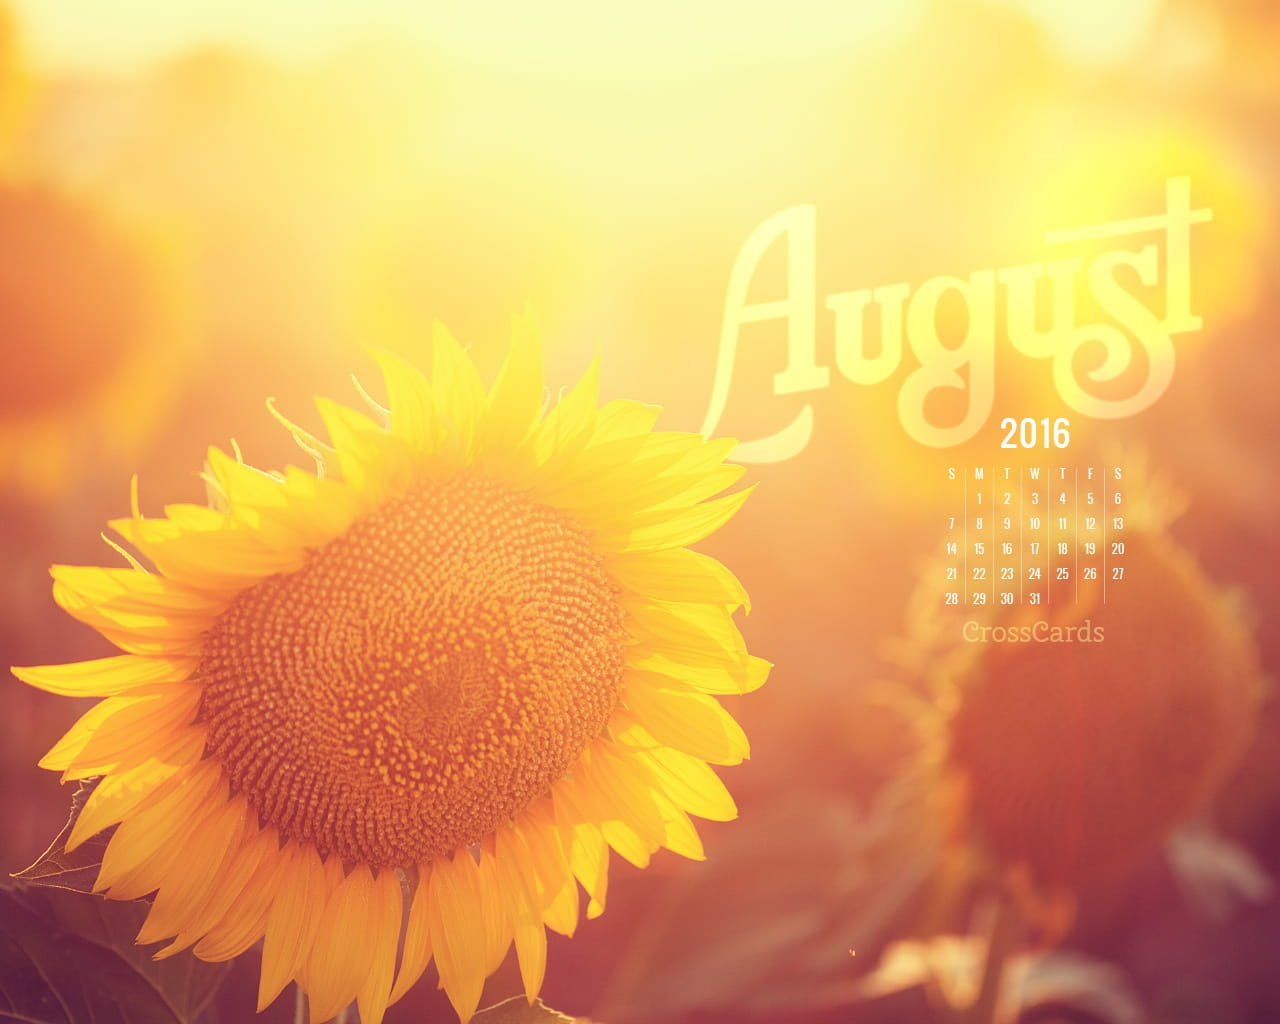 Free Download Wallpapers Of Friendship Quotes August 2016 Sunflower Desktop Calendar Free August